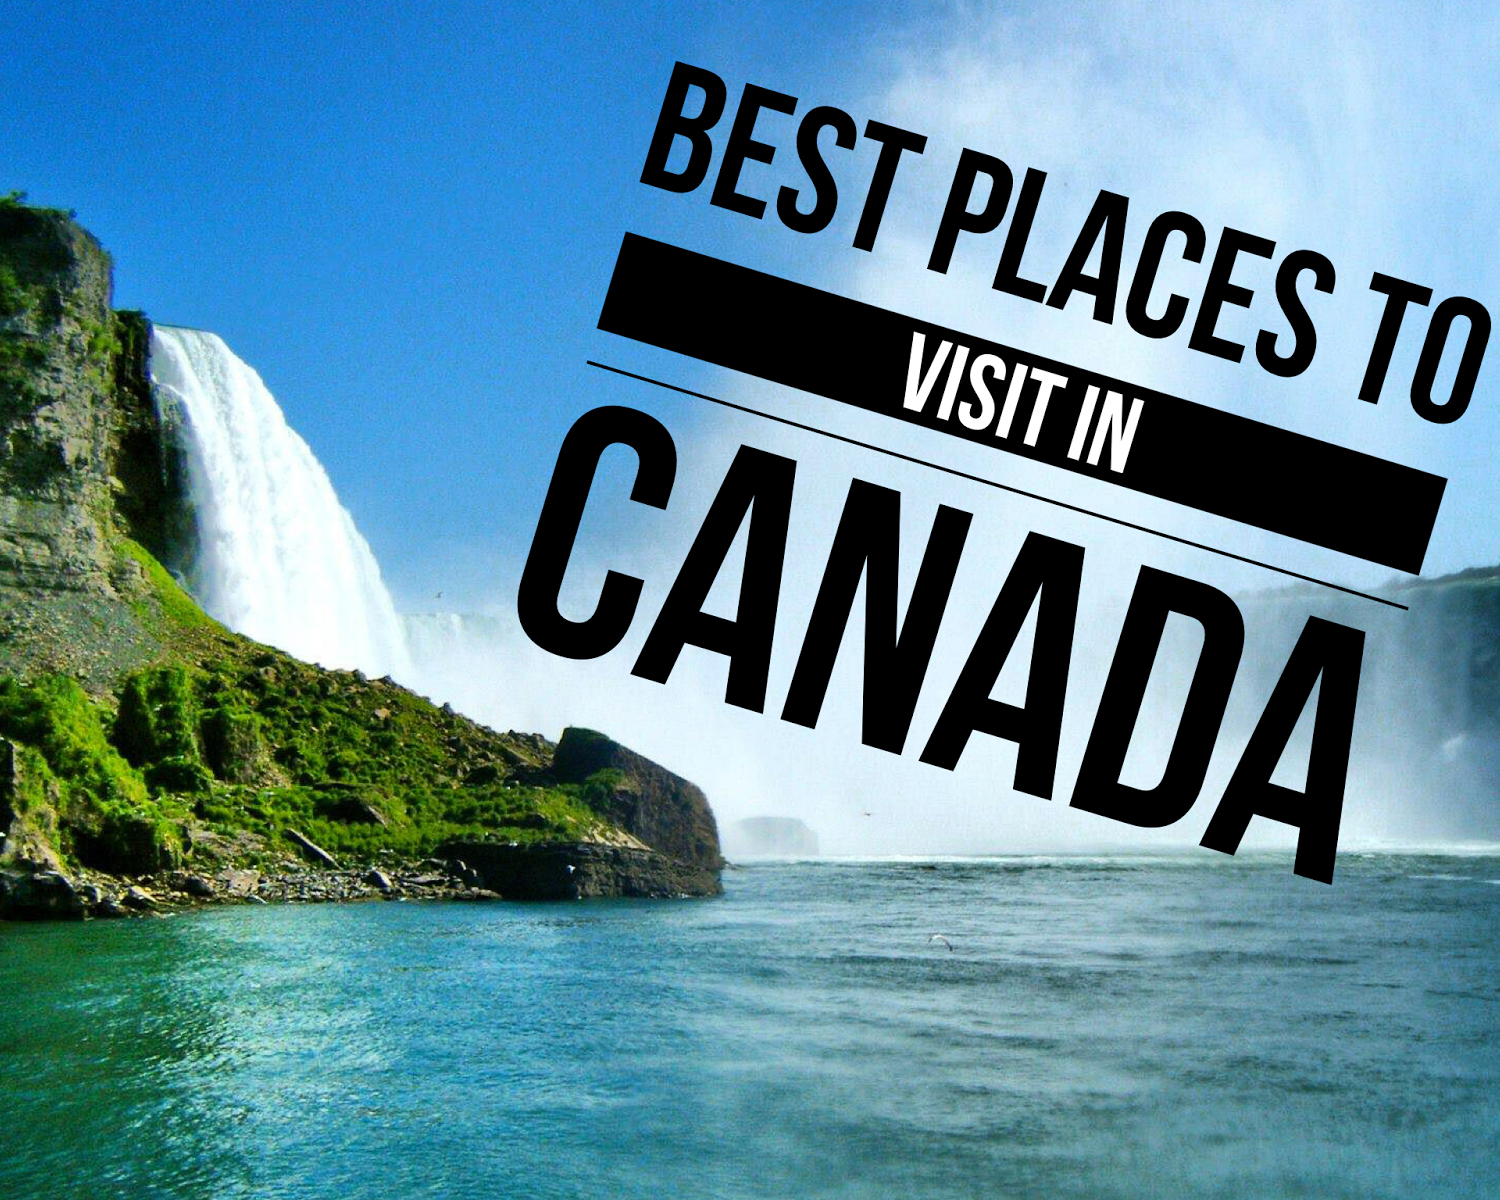 The Best Places to Visit When in Canada